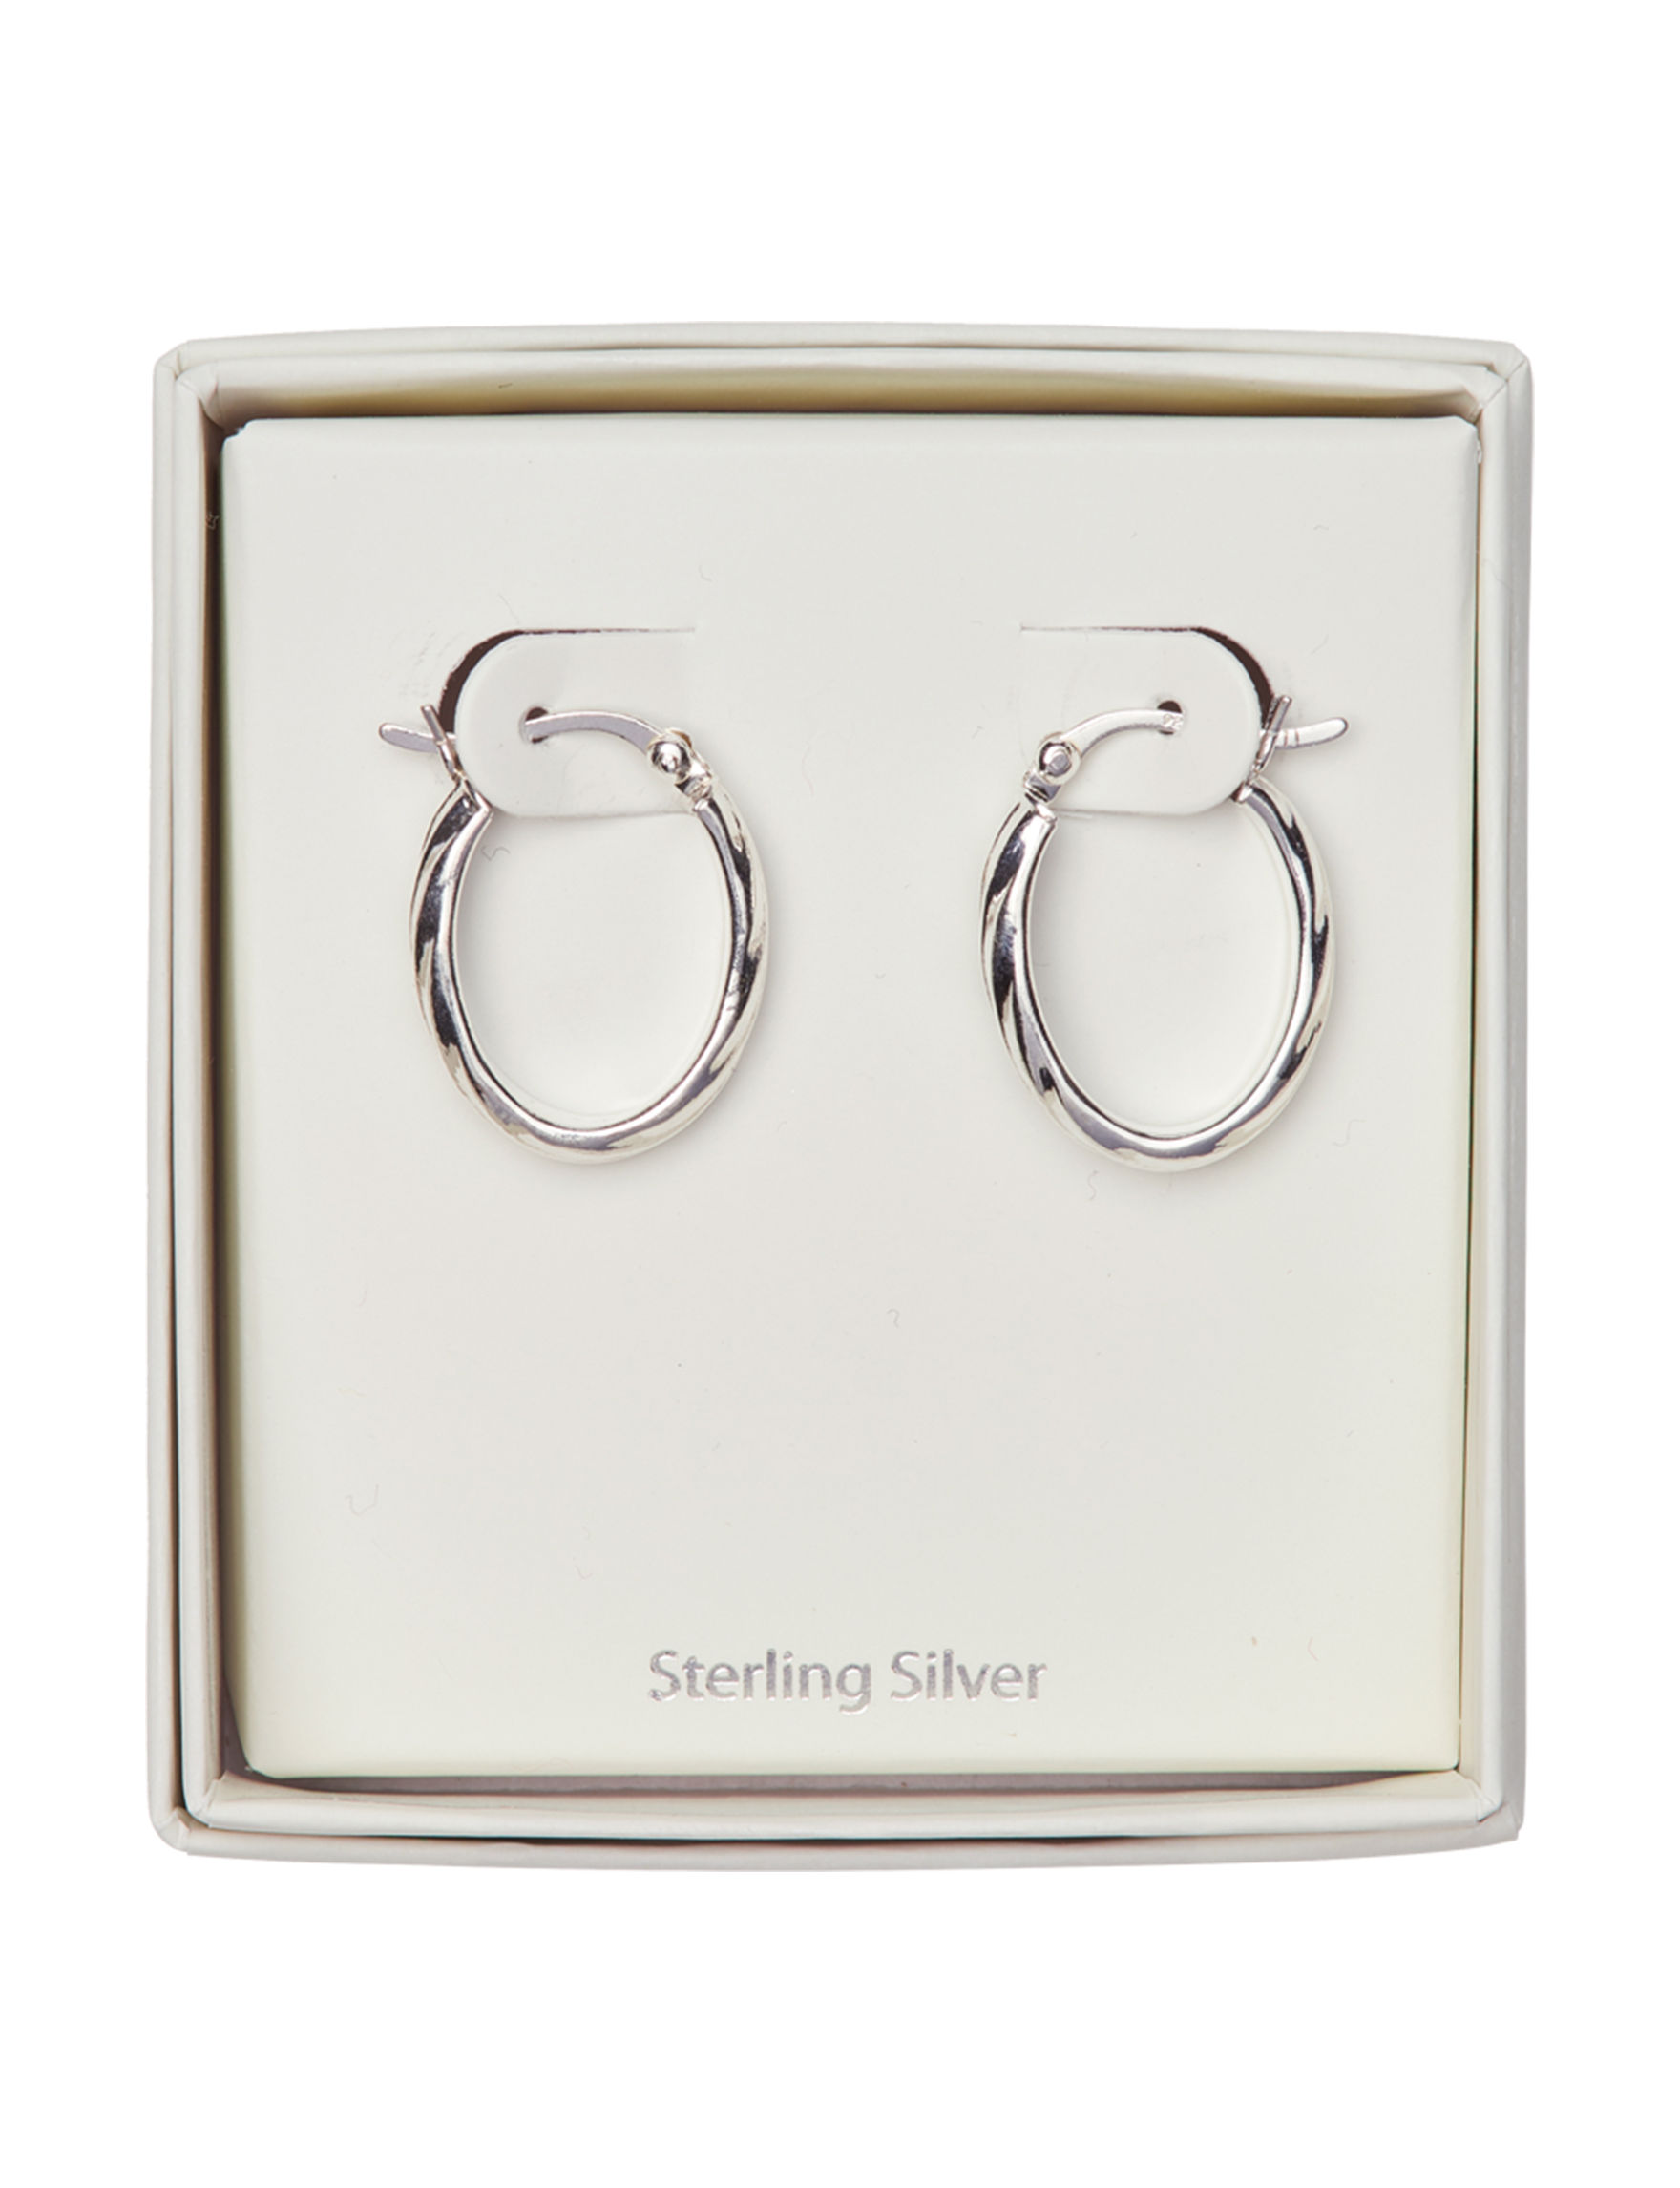 Marsala Sterling Silver Hoops Earrings Fine Jewelry